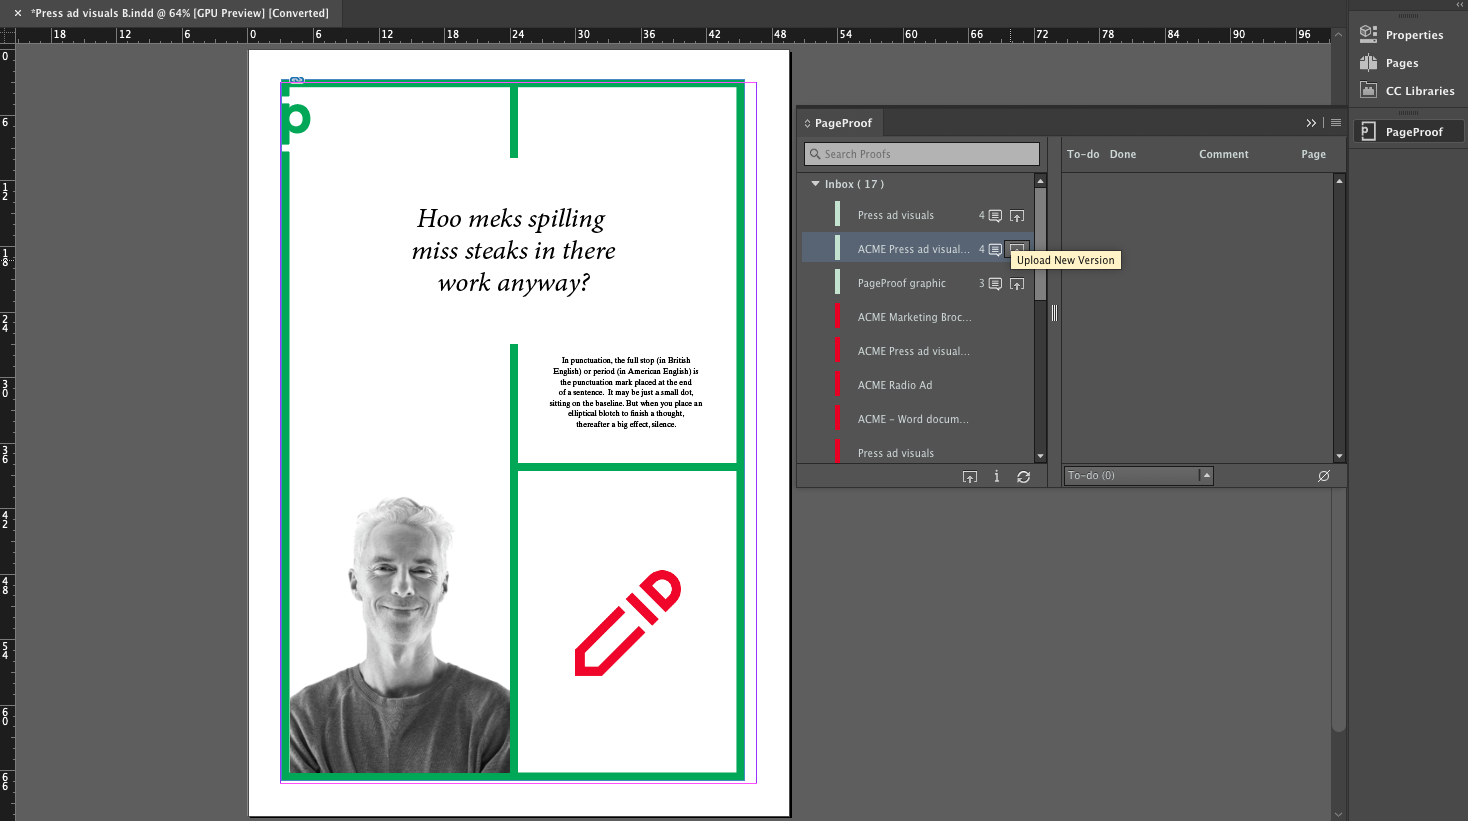 Uploading a new proof version directly from Adobe InDesign